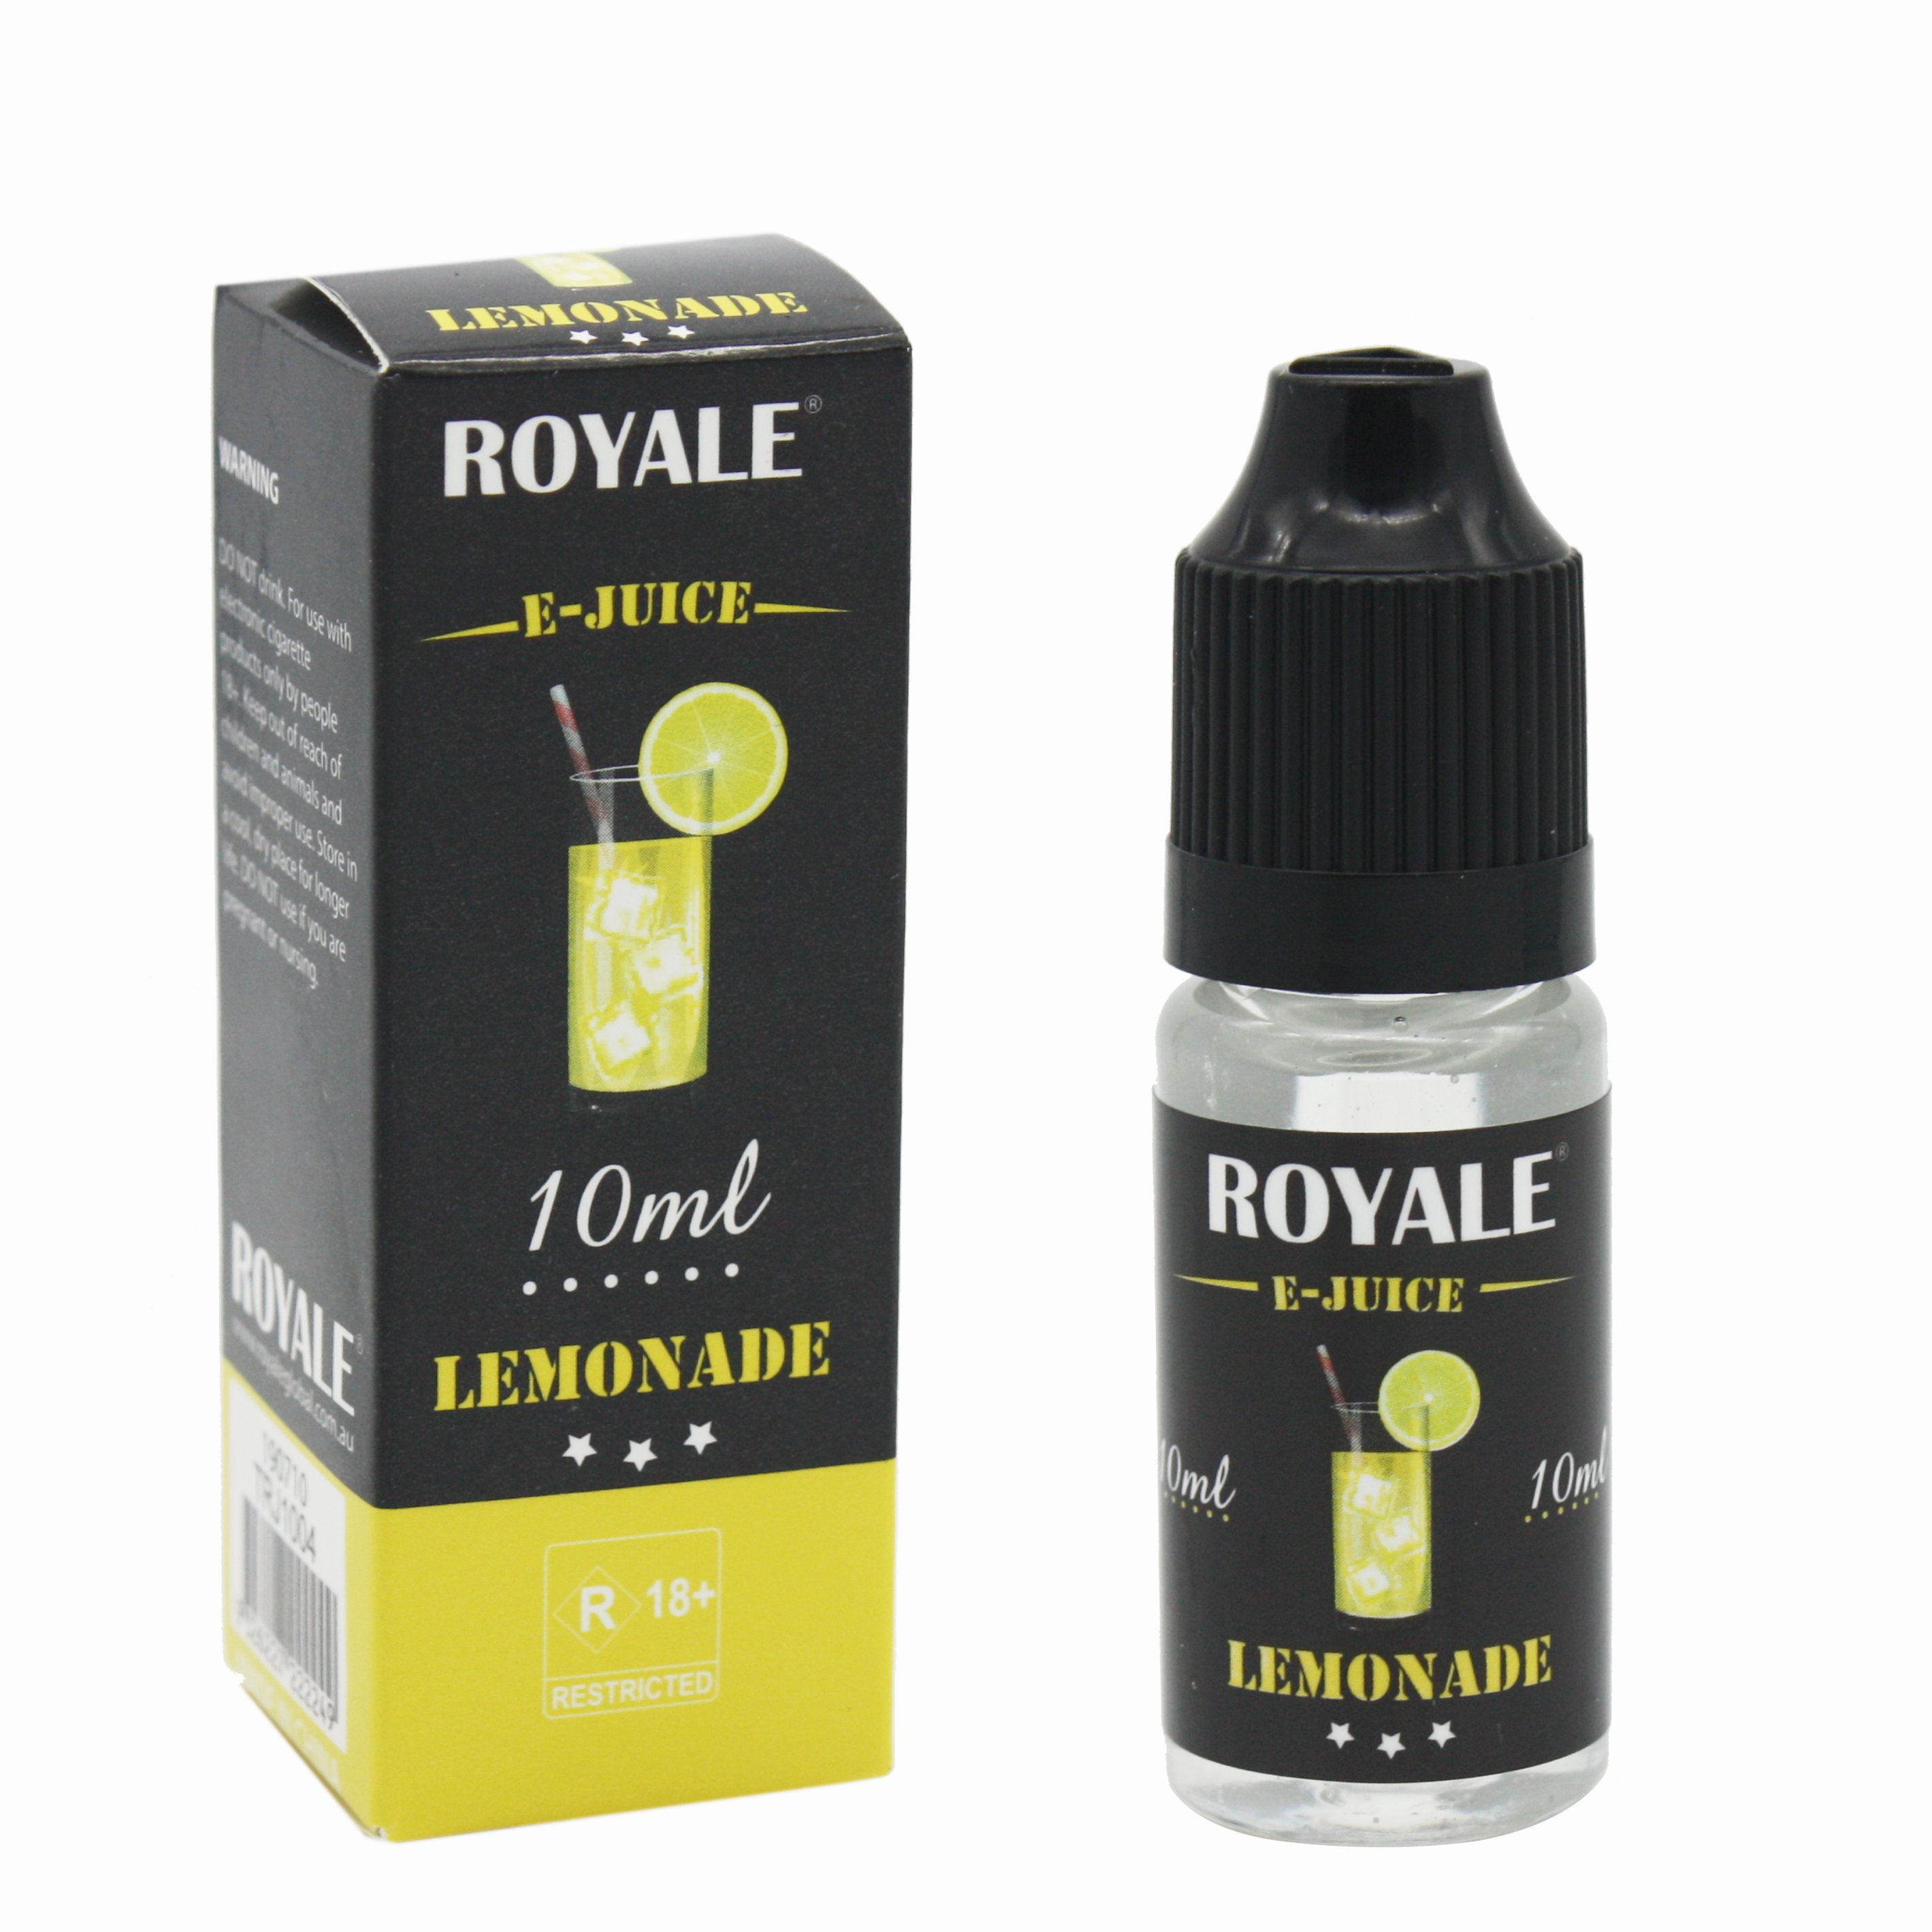 Royale E-juice- Lemonade